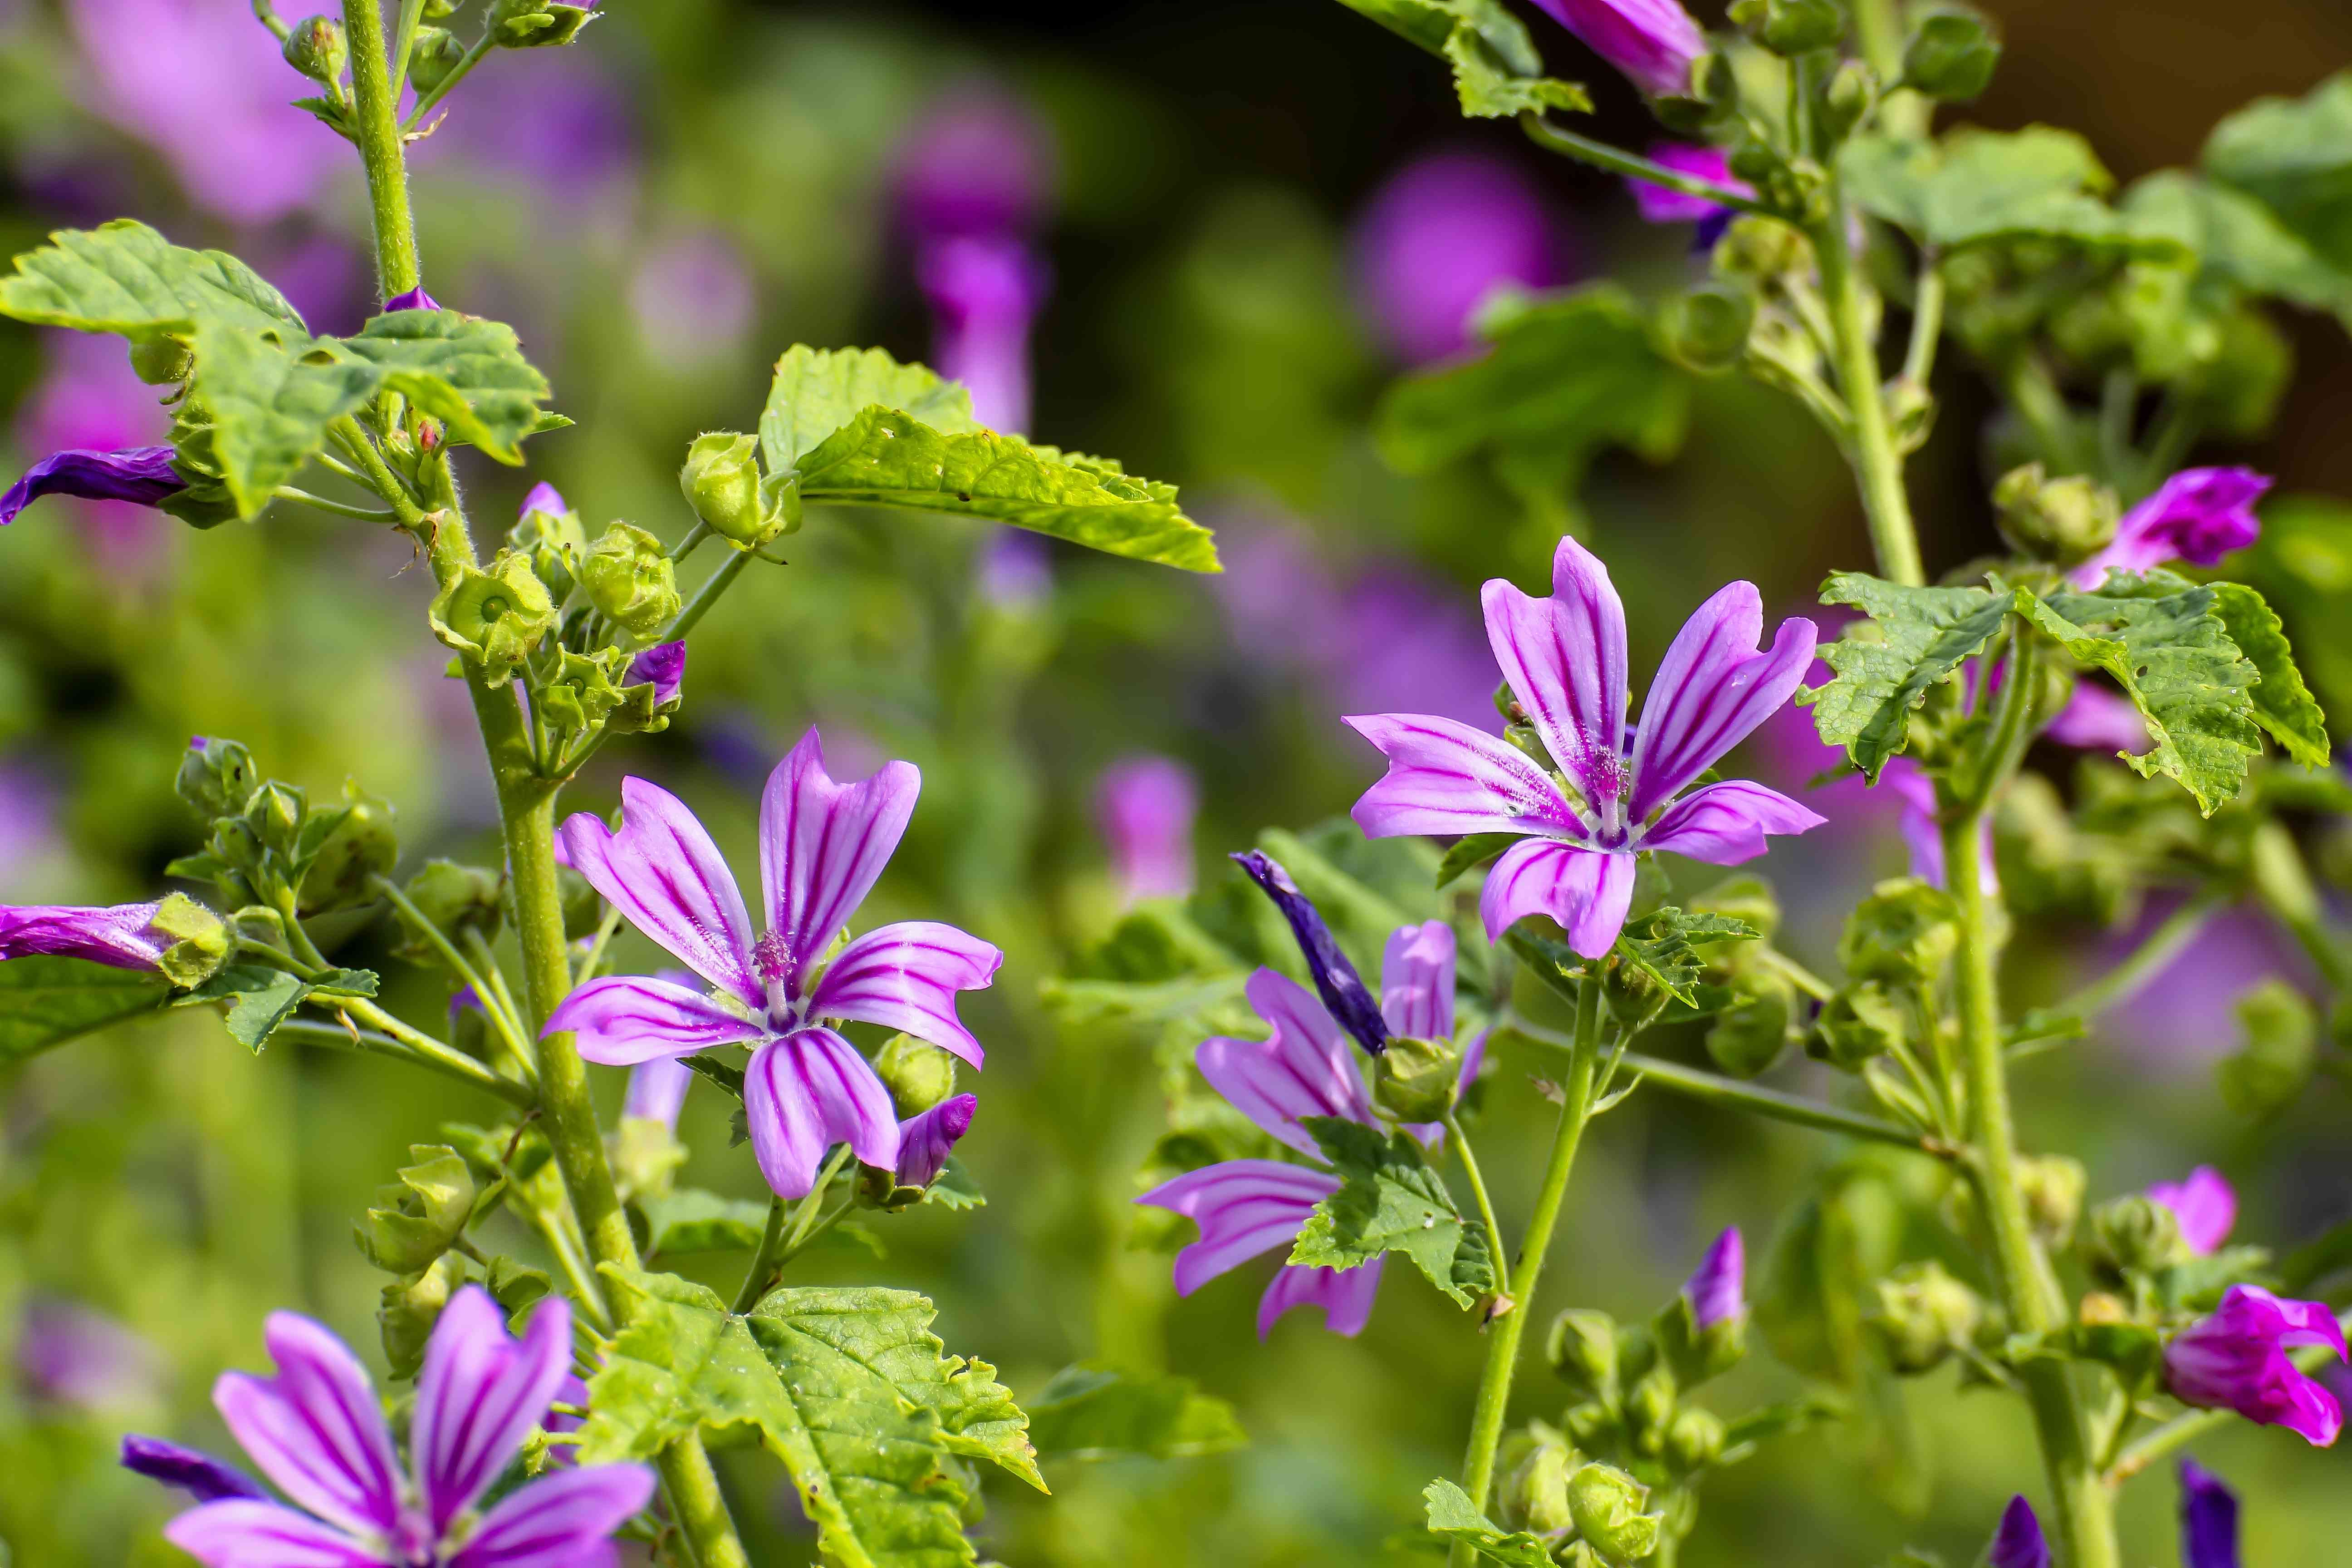 Close-up of purple flowers of wild mallow